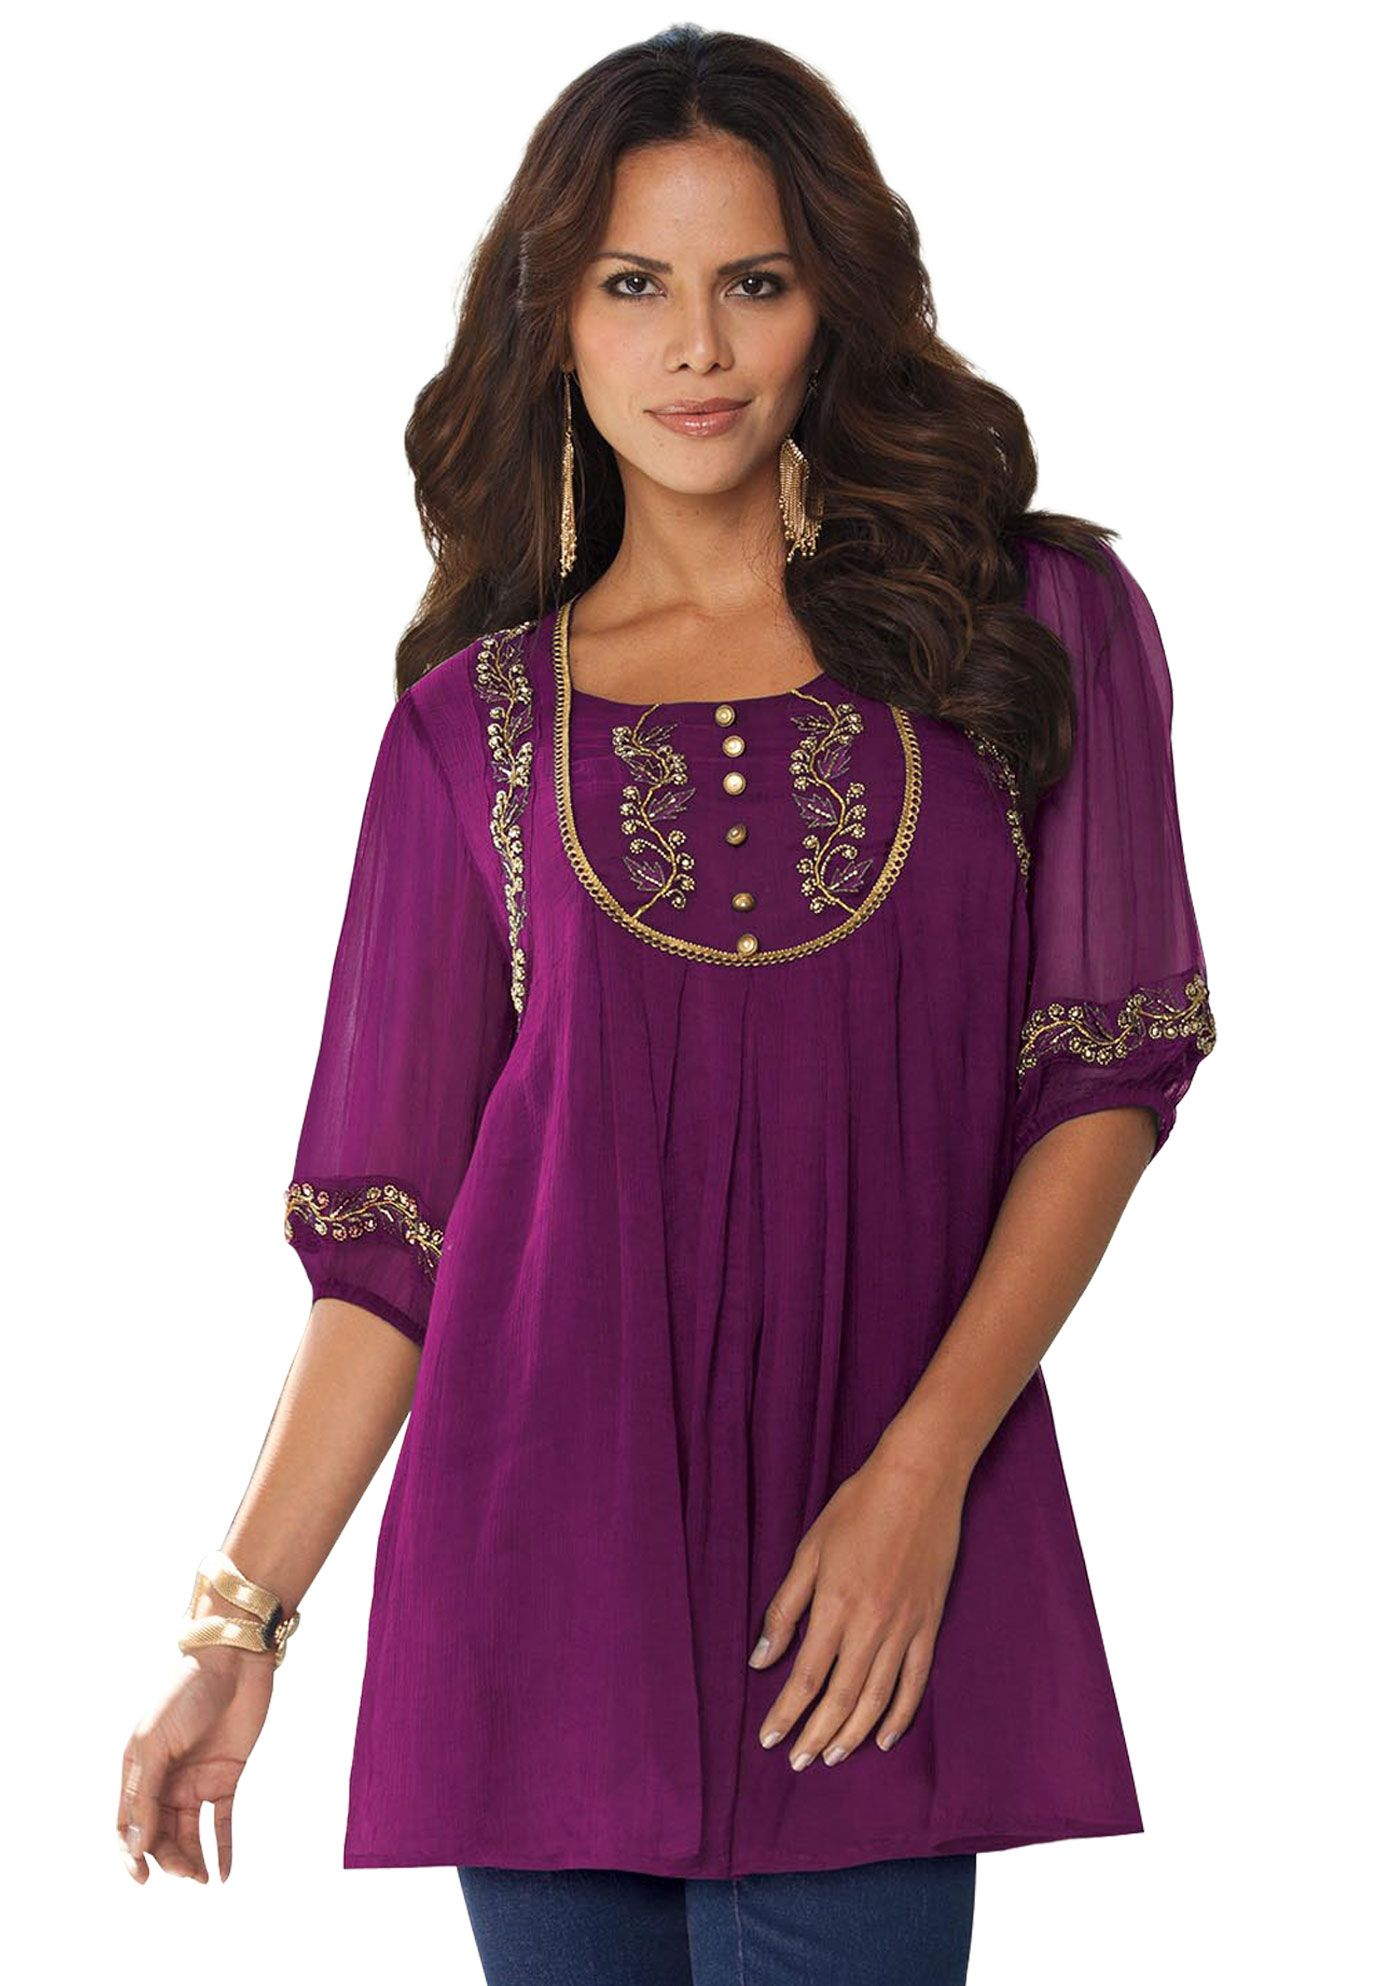 96400720a5 Love this top.  60 Plus Size Clothing - Fashion for Plus Size women ...